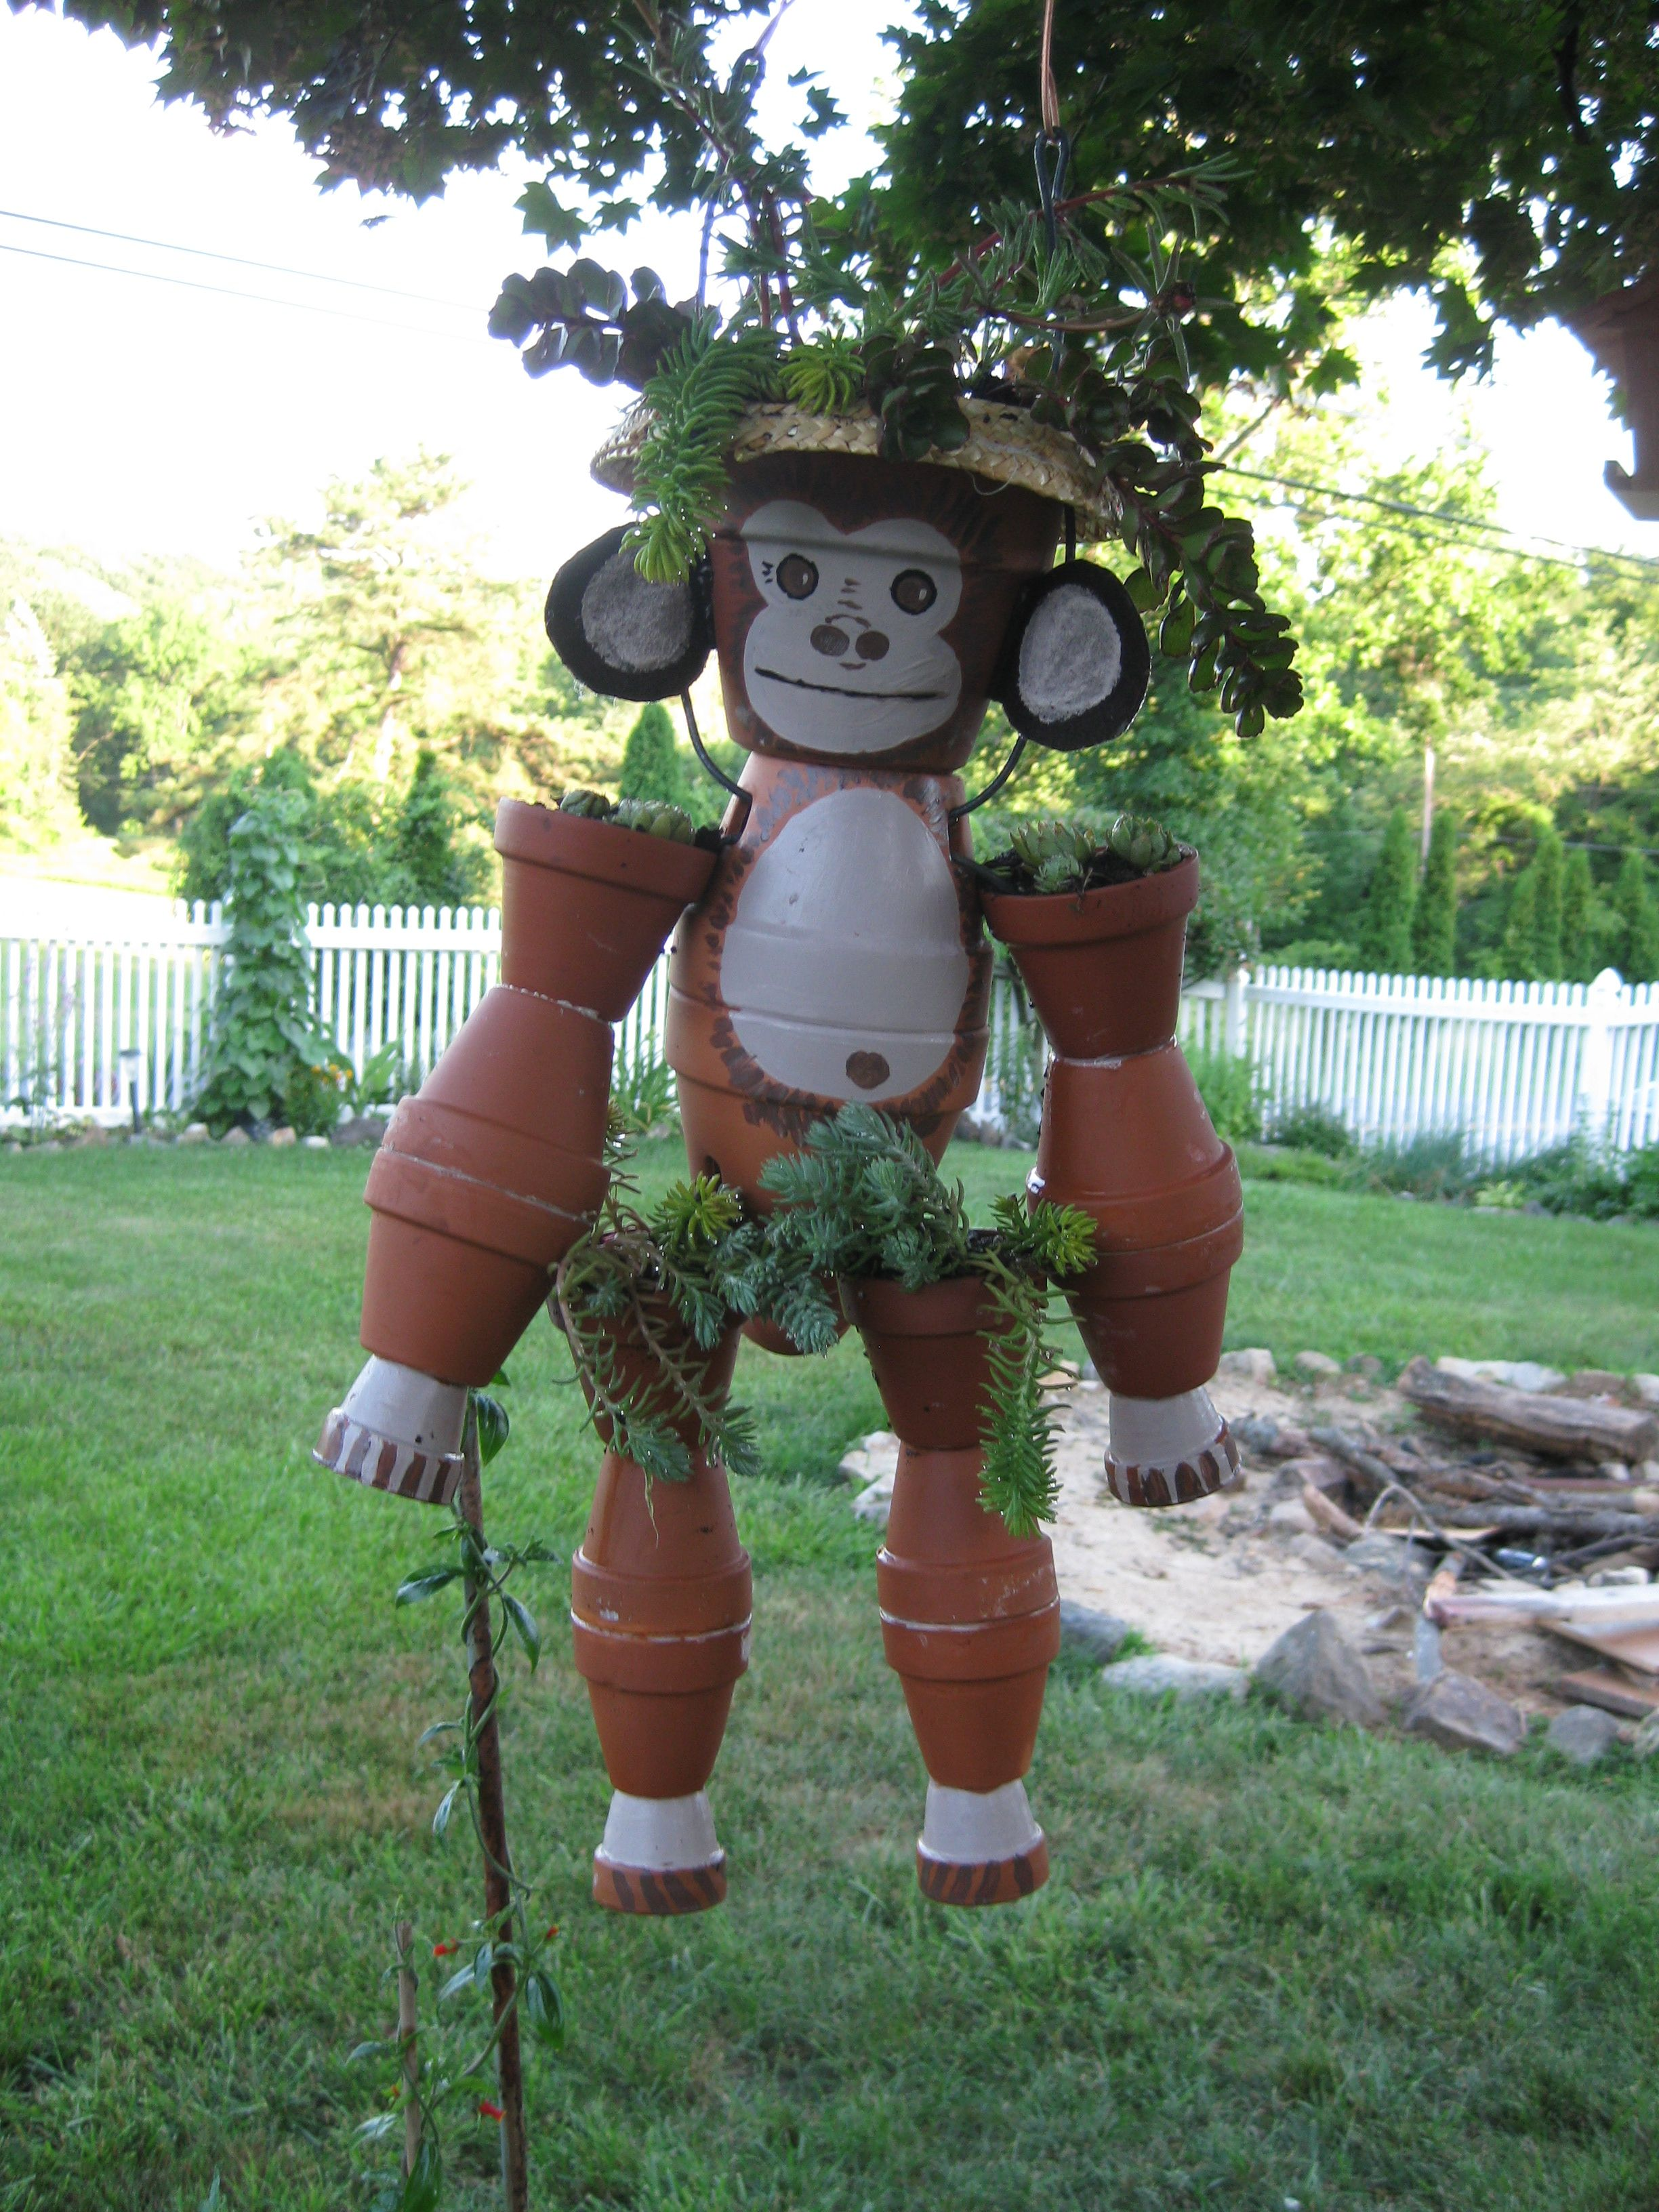 Not available at link but I like this clay pot monkey